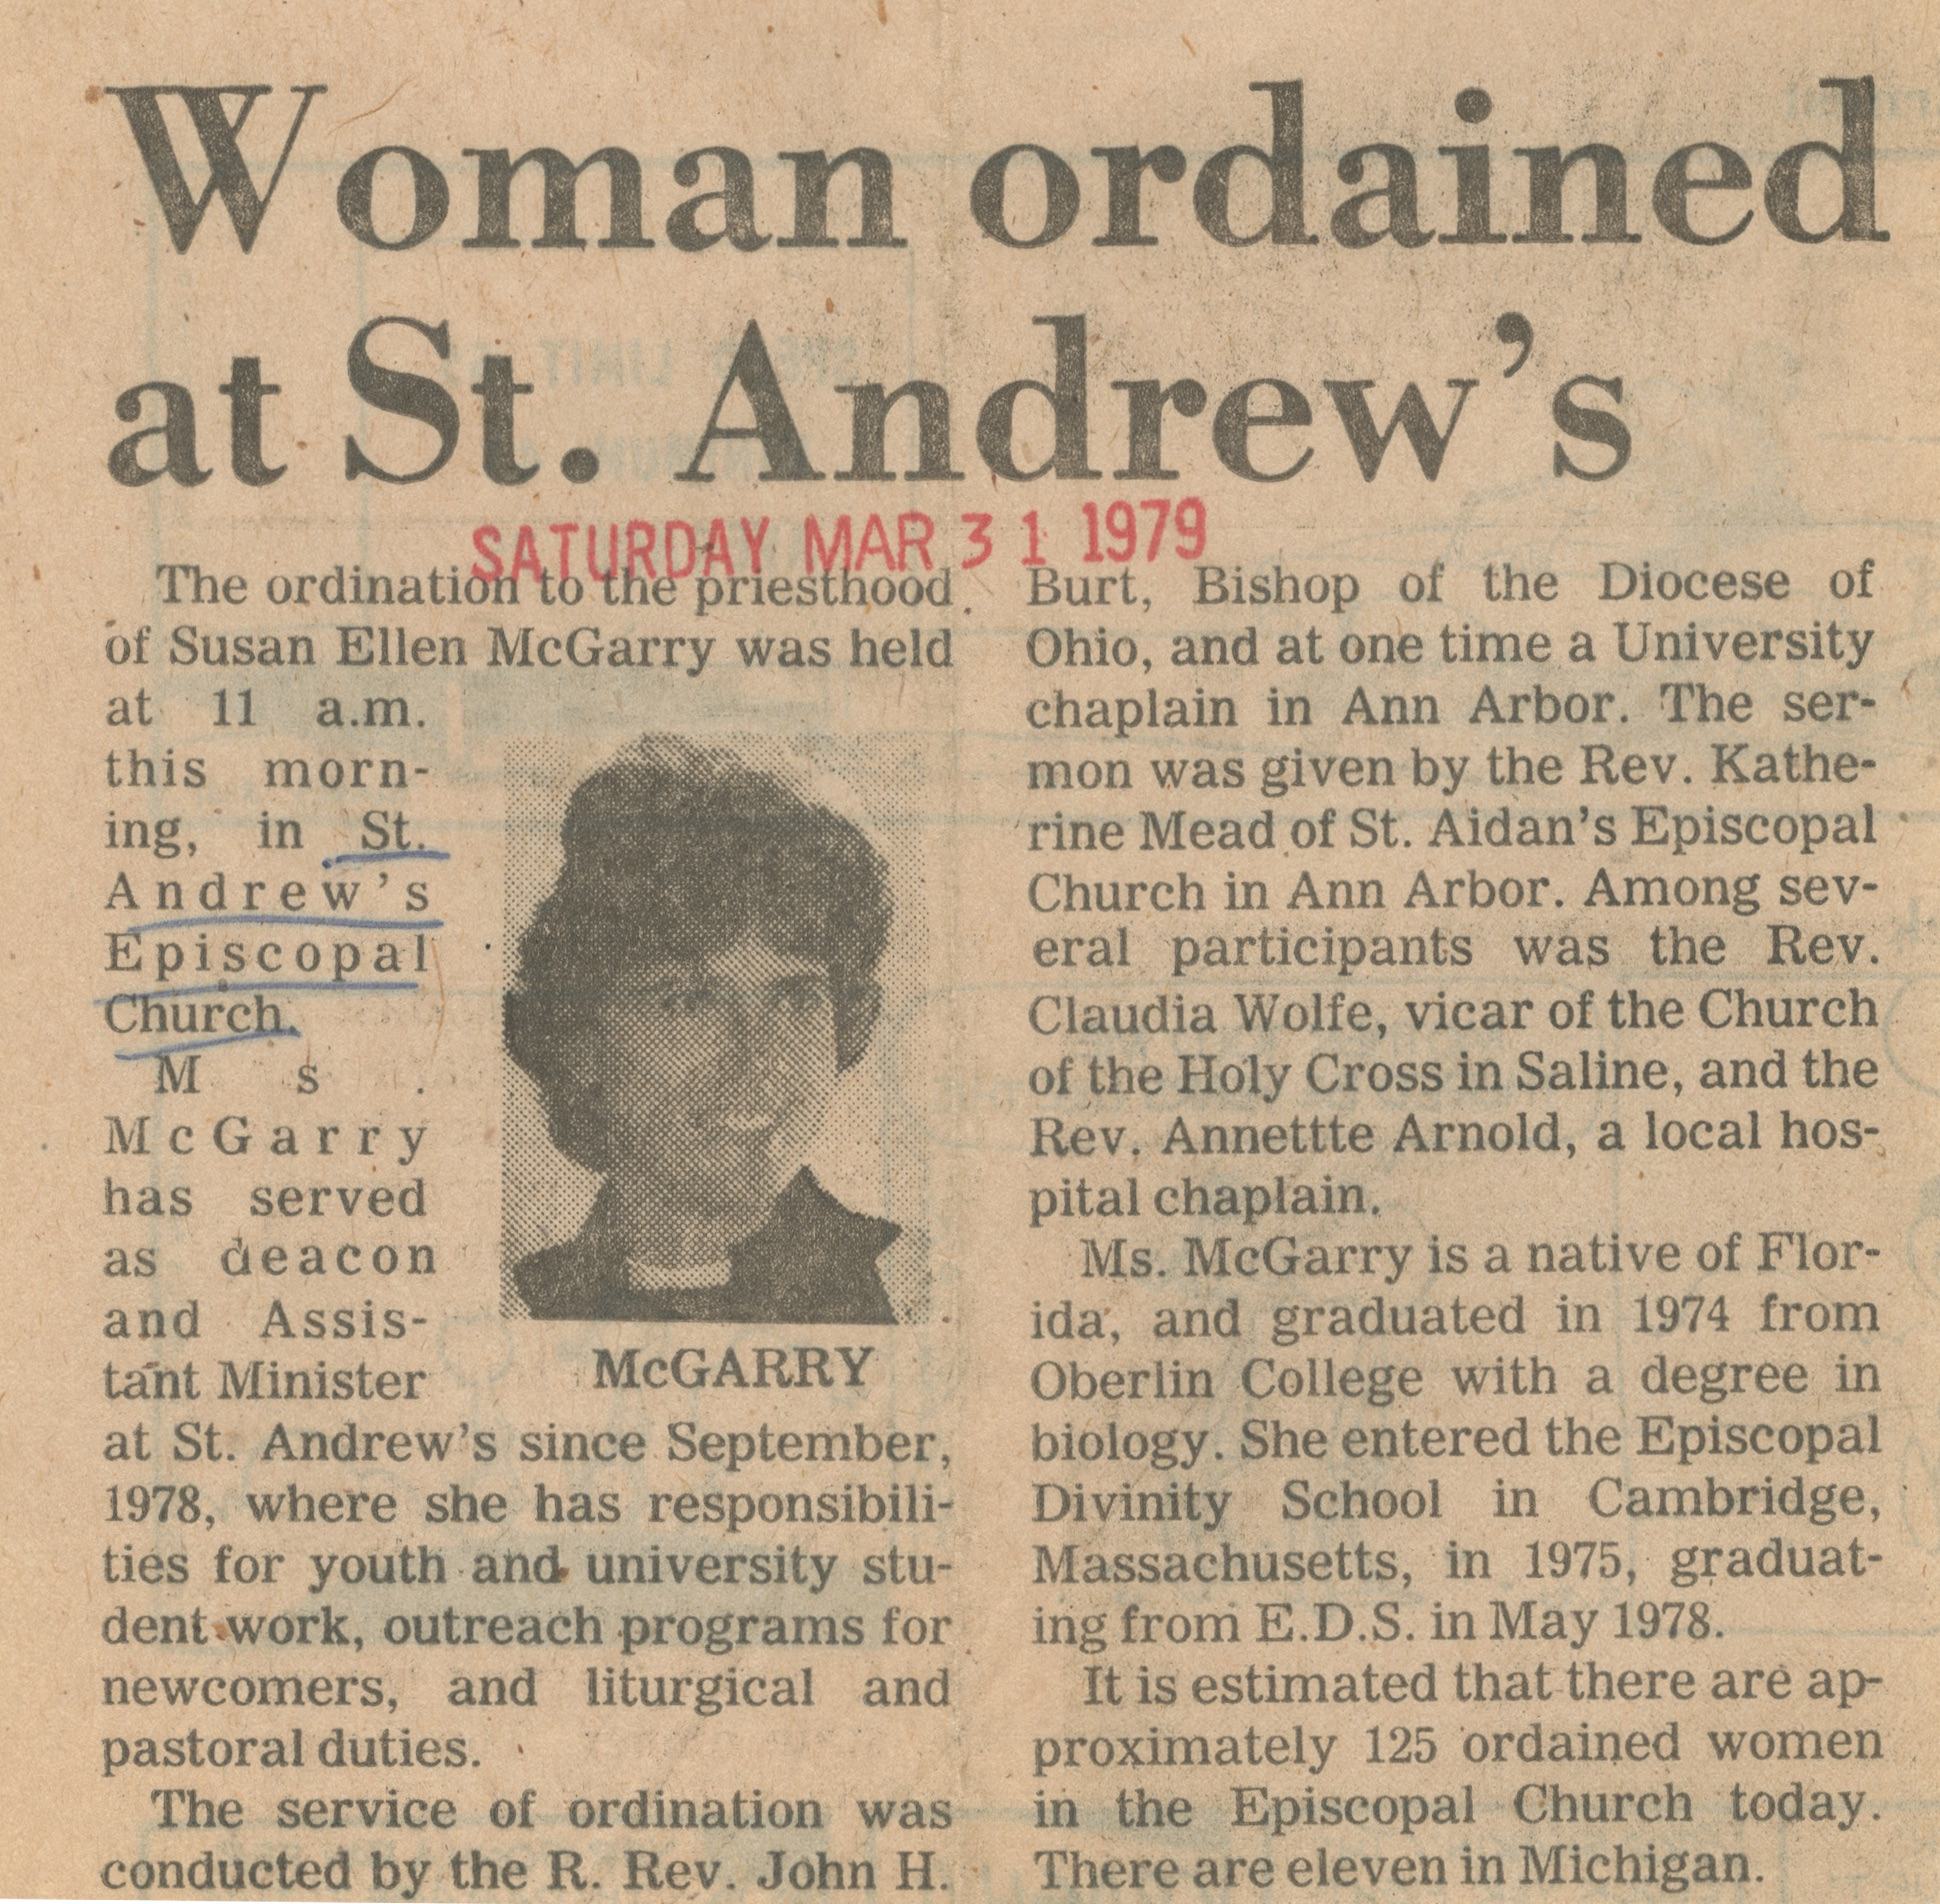 Woman Ordained At St. Andrew's image